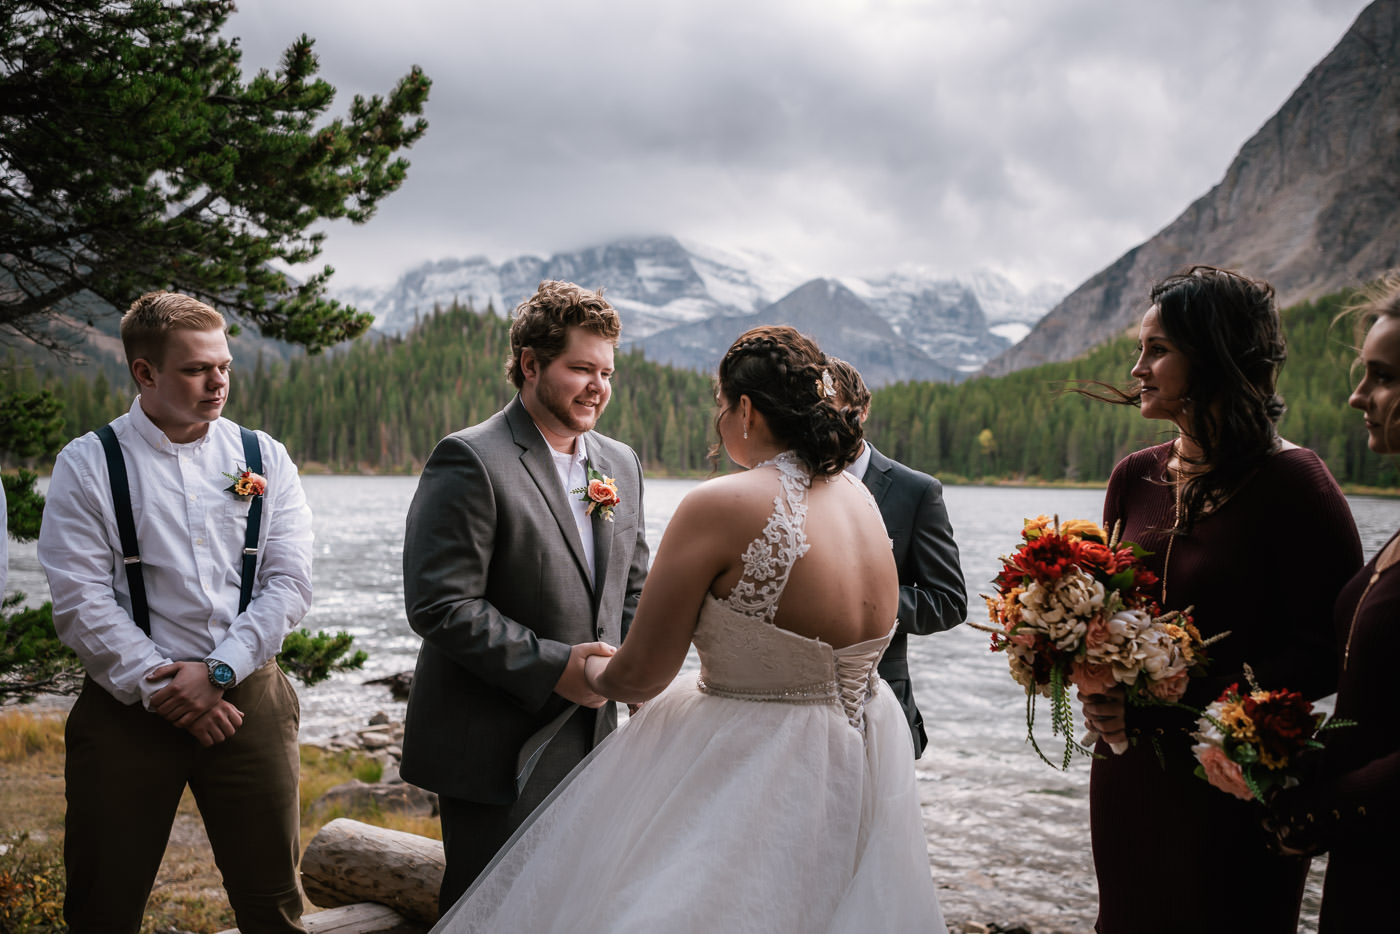 Groom smiles at his bride as they exchange their vows in Glacier National Park.